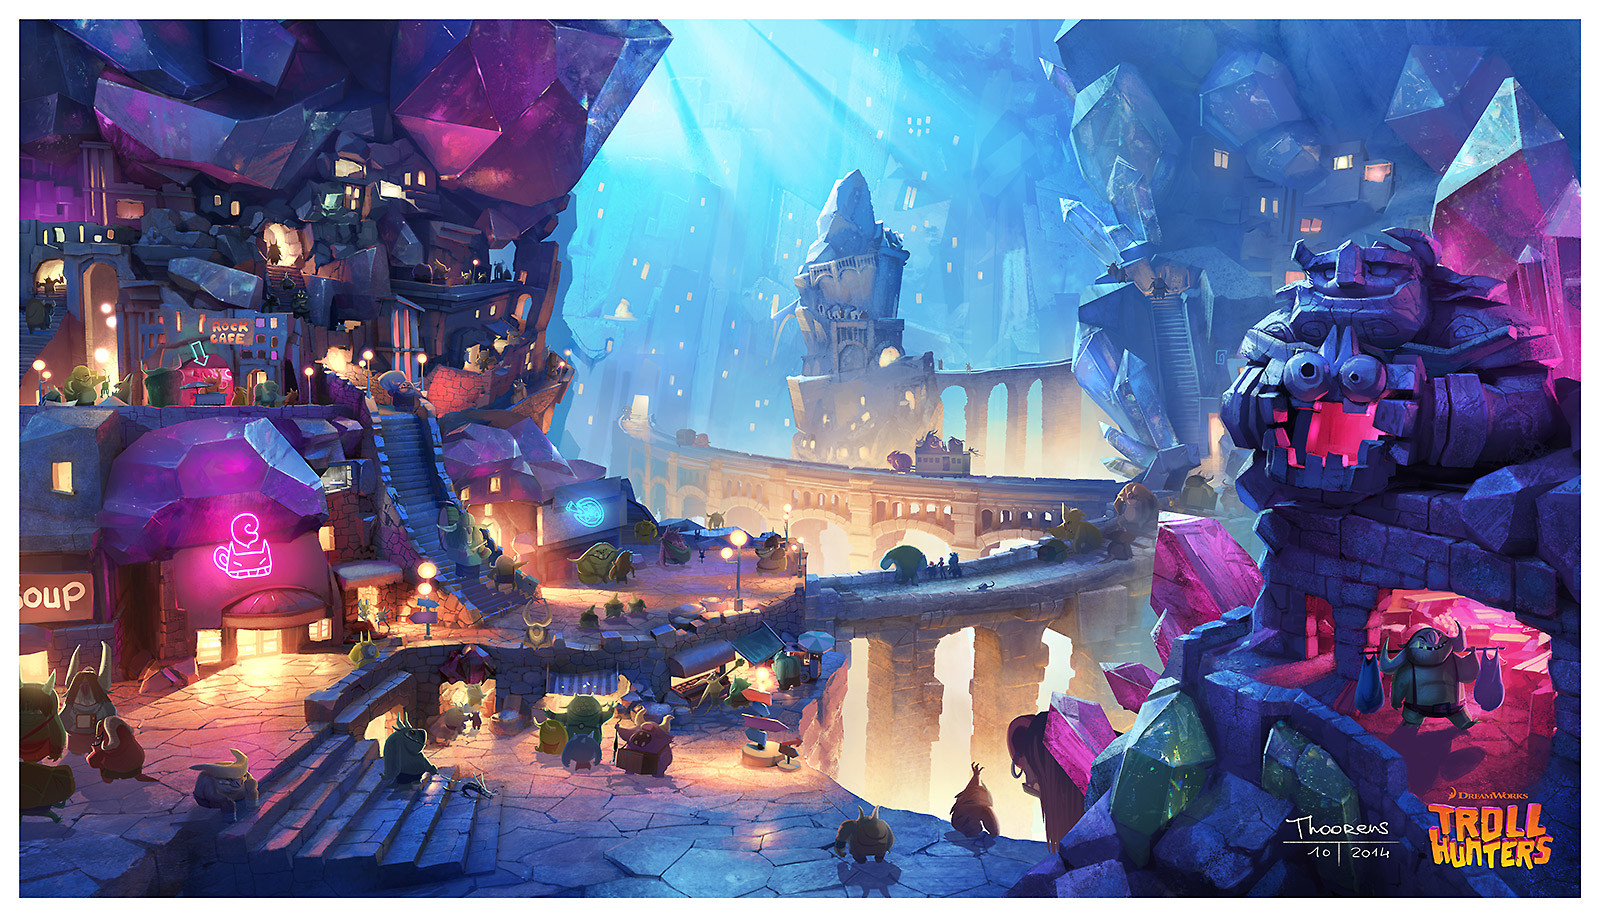 Trollhunters Concept Art by Geoffroy Thoorens (8 pics)